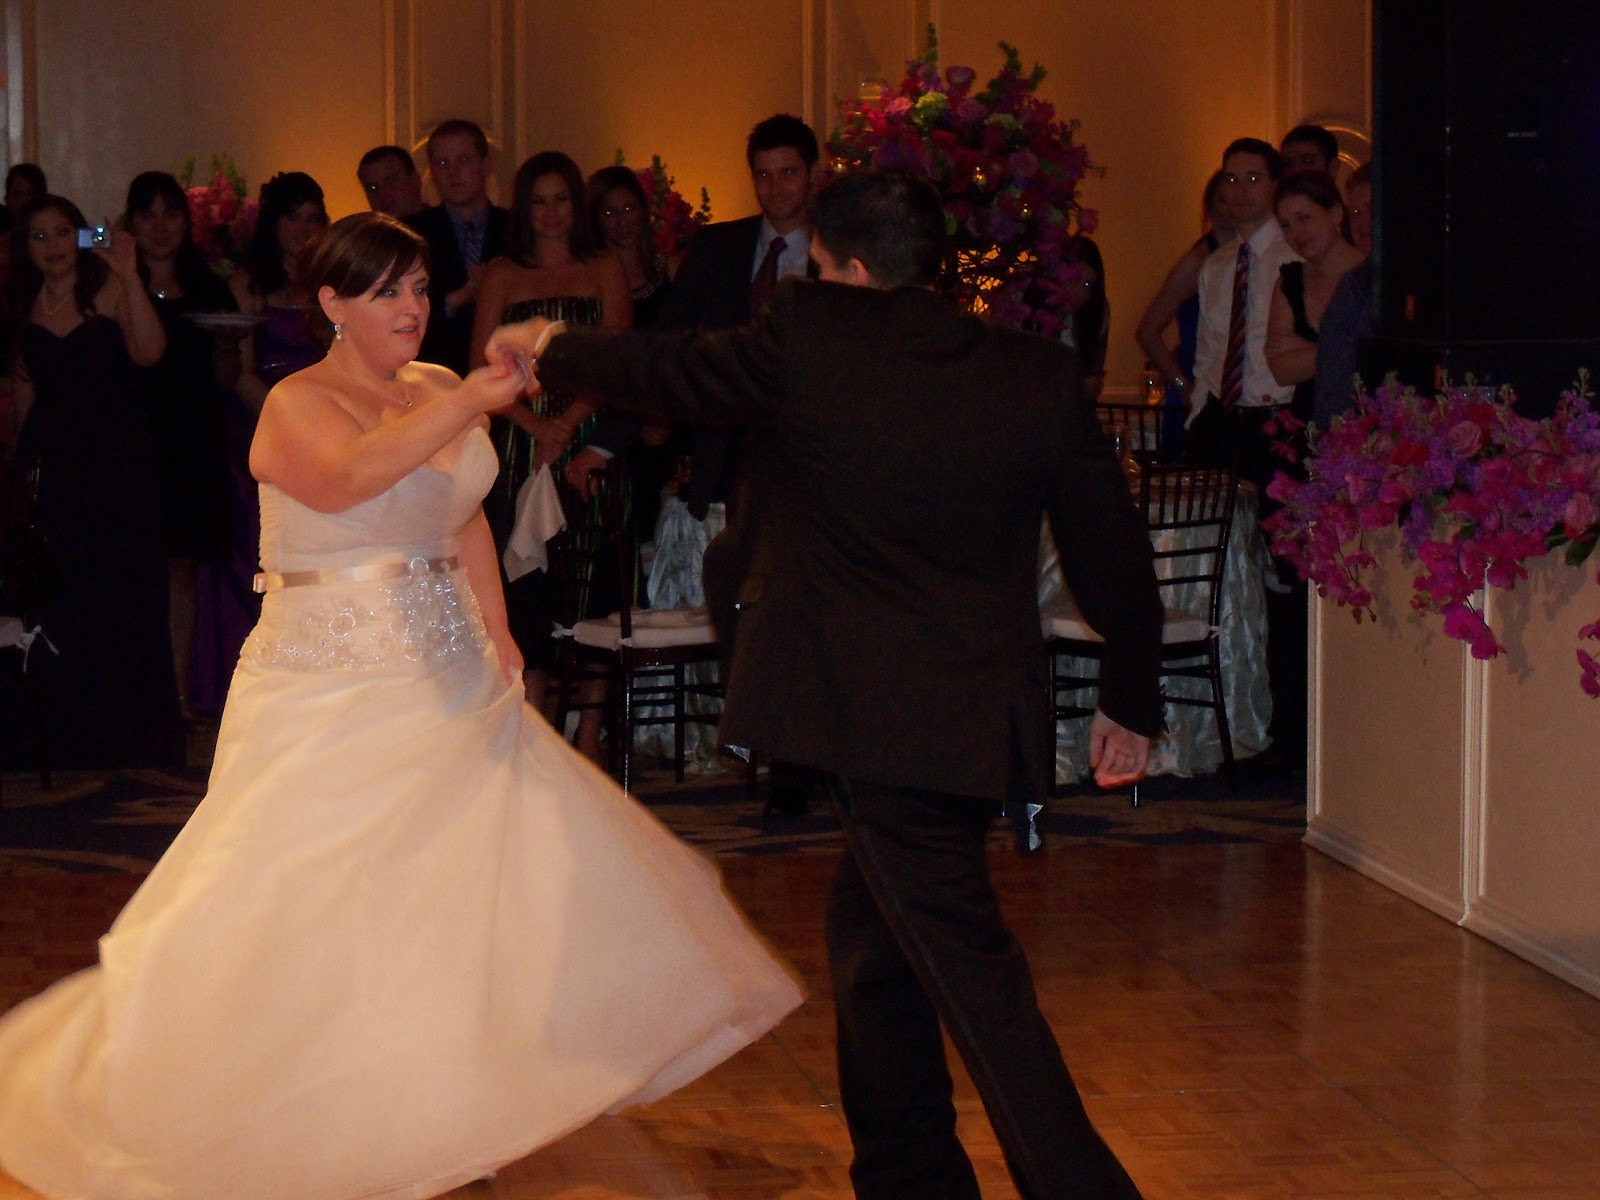 Megan Neal and Mark Suarez wedding - 100_8353.JPG